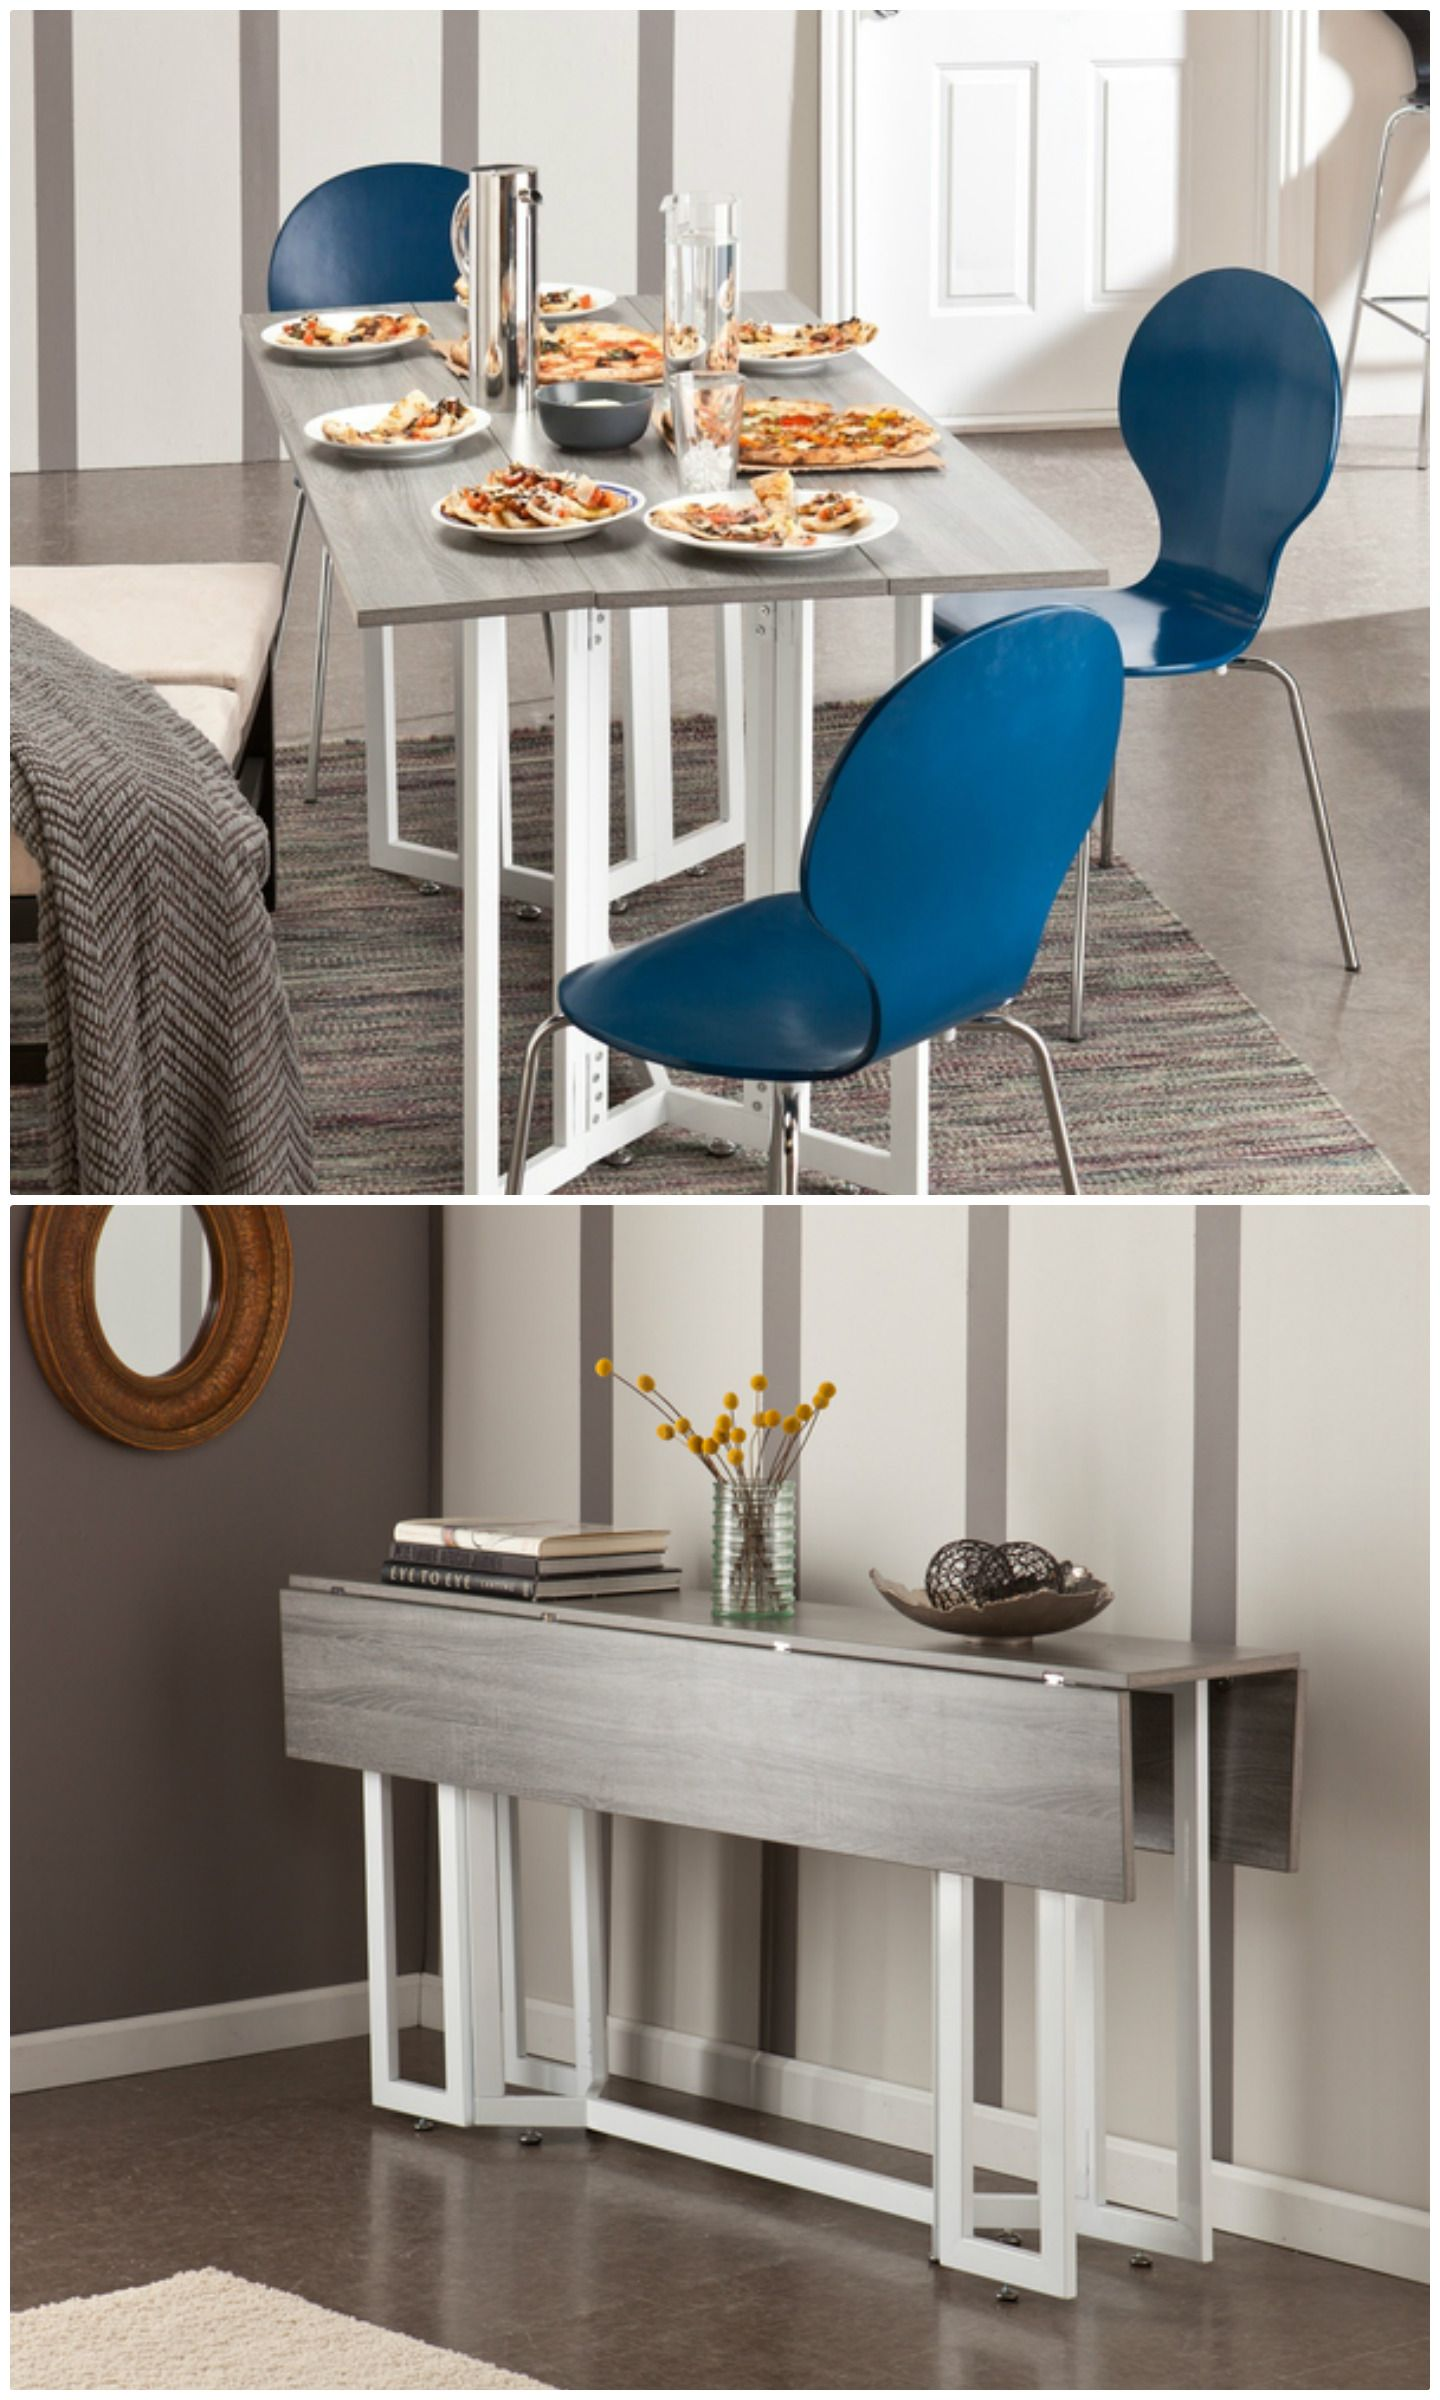 Twenty Dining Tables That Work Great In Small Spaces Dining Table Small Space Space Saving Dining Table Small Table Decor